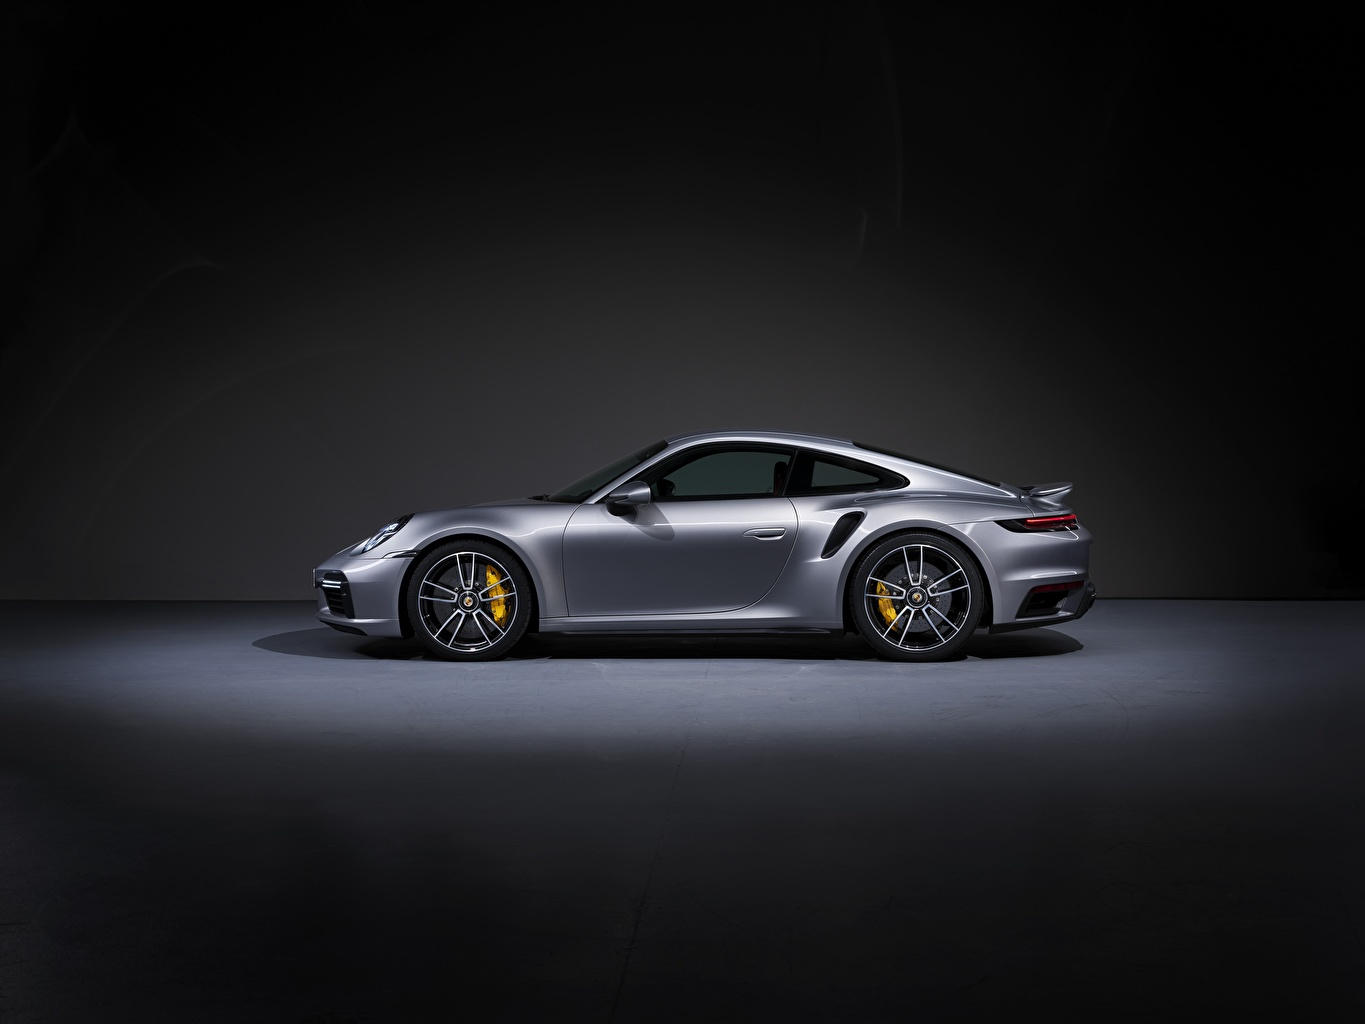 Photo Porsche 911 Turbo S 2020 992 Coupe Silver Color Side Cars